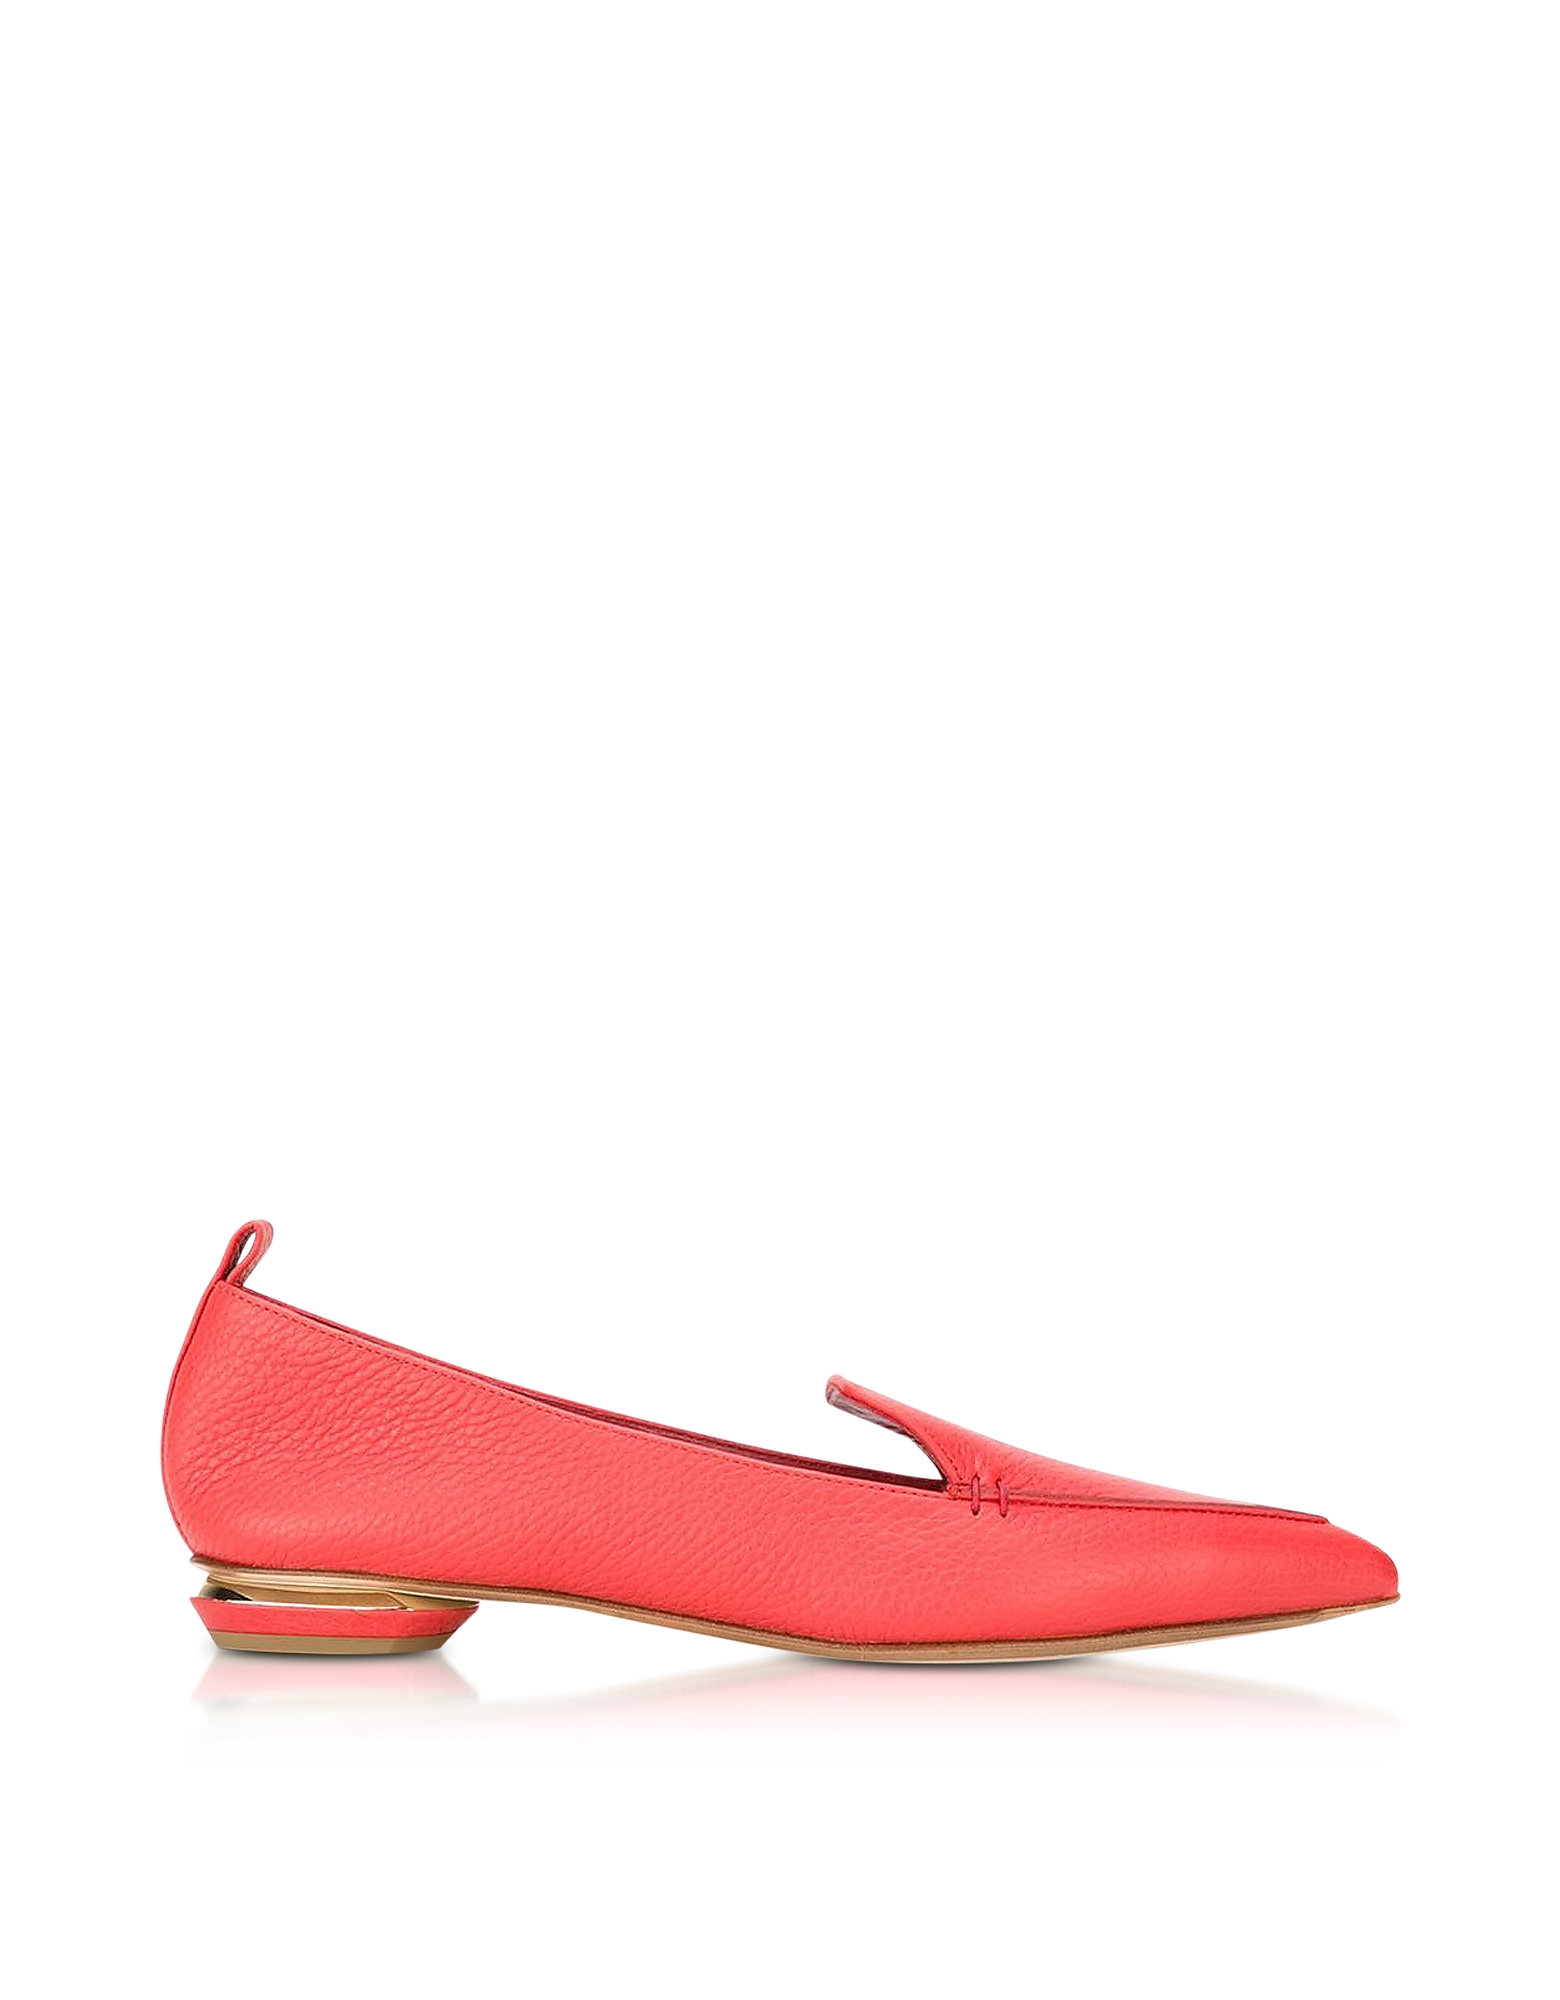 Nicholas Kirkwood Shoes, Beya Poppy Red Leather Loafer